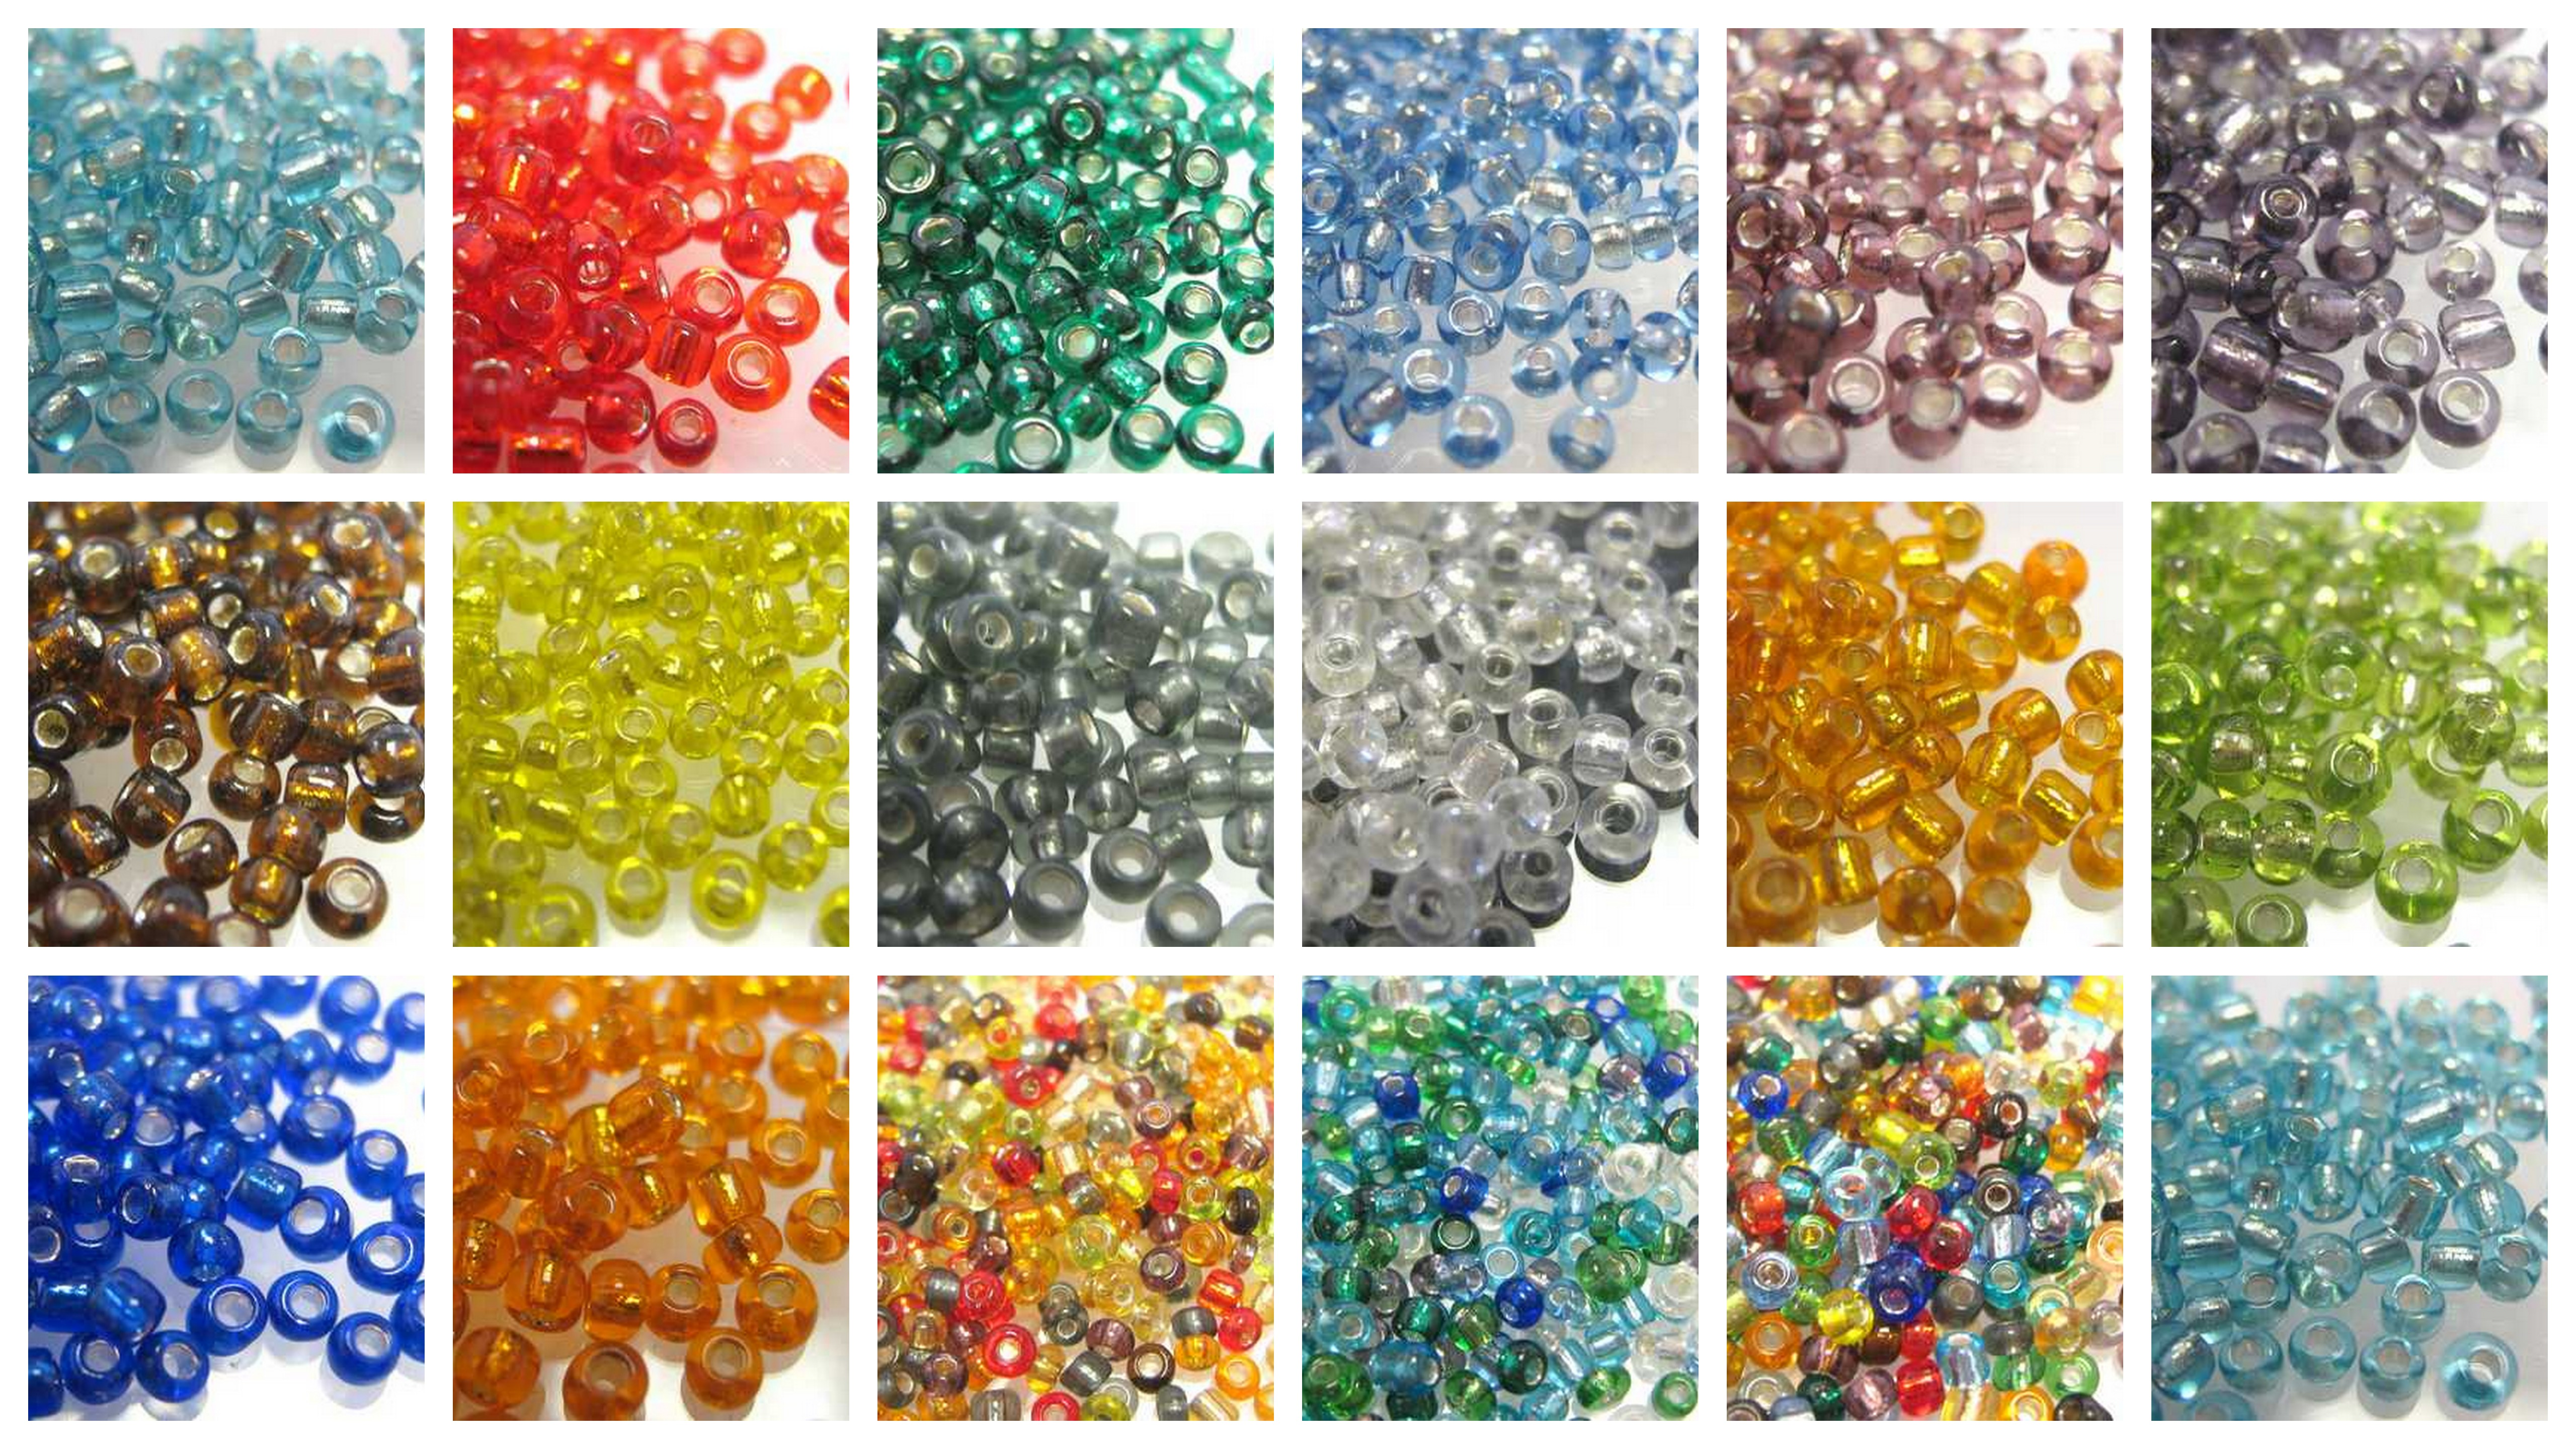 55g-SIZE-11-0-SILVER-LINED-SEED-BEADS-APPROX-5500-BEADS-CHOICE-OF-MANY-COLOURS